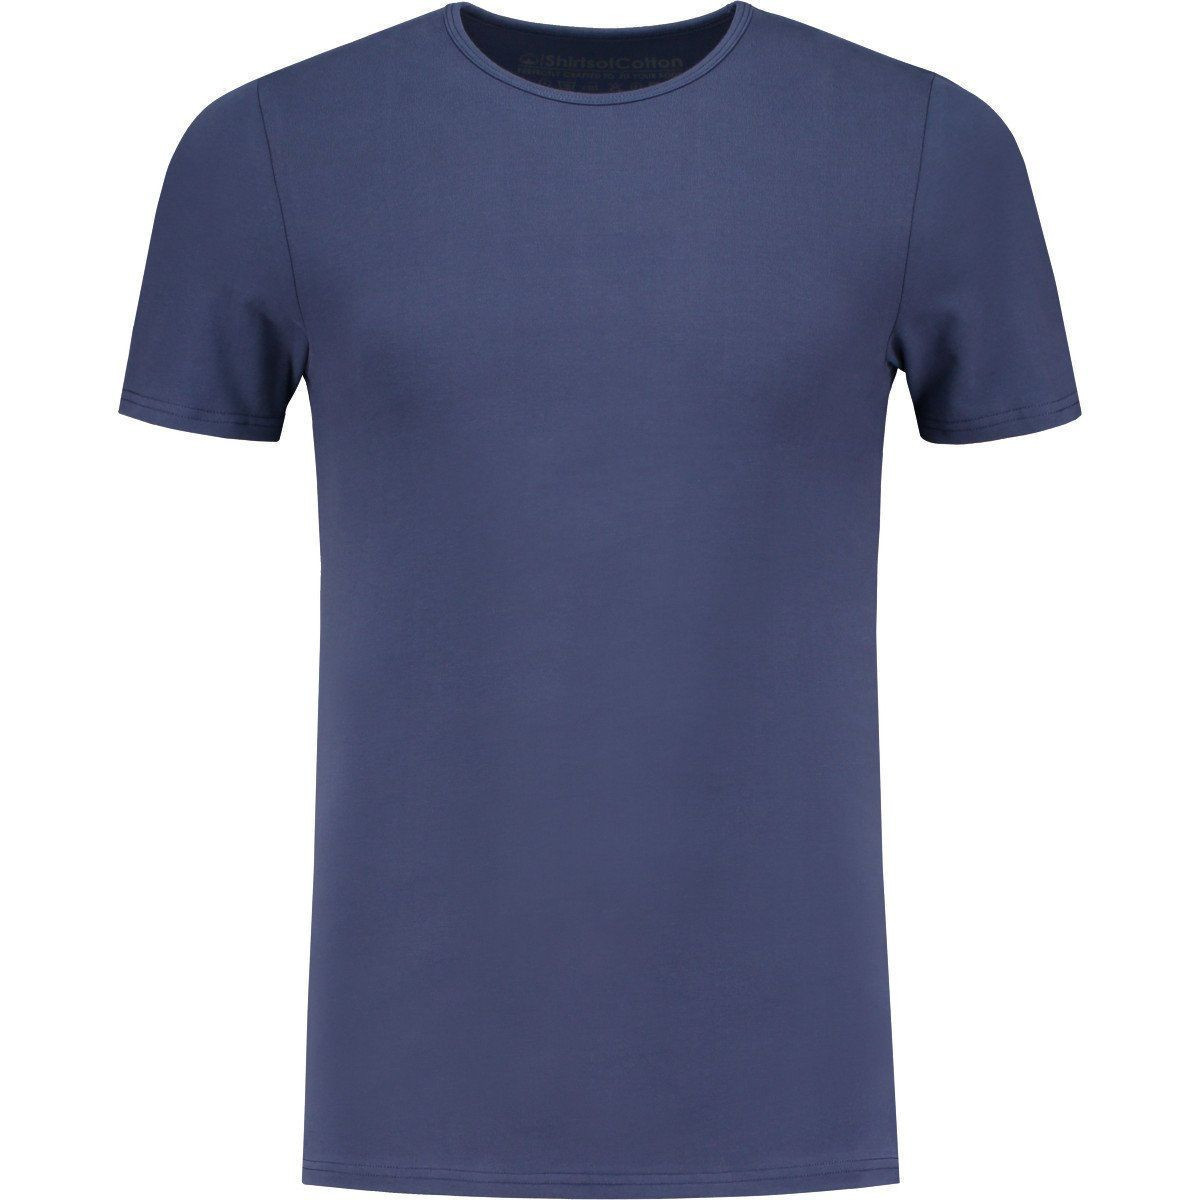 OEM ODM Tshirts For Man and Woman